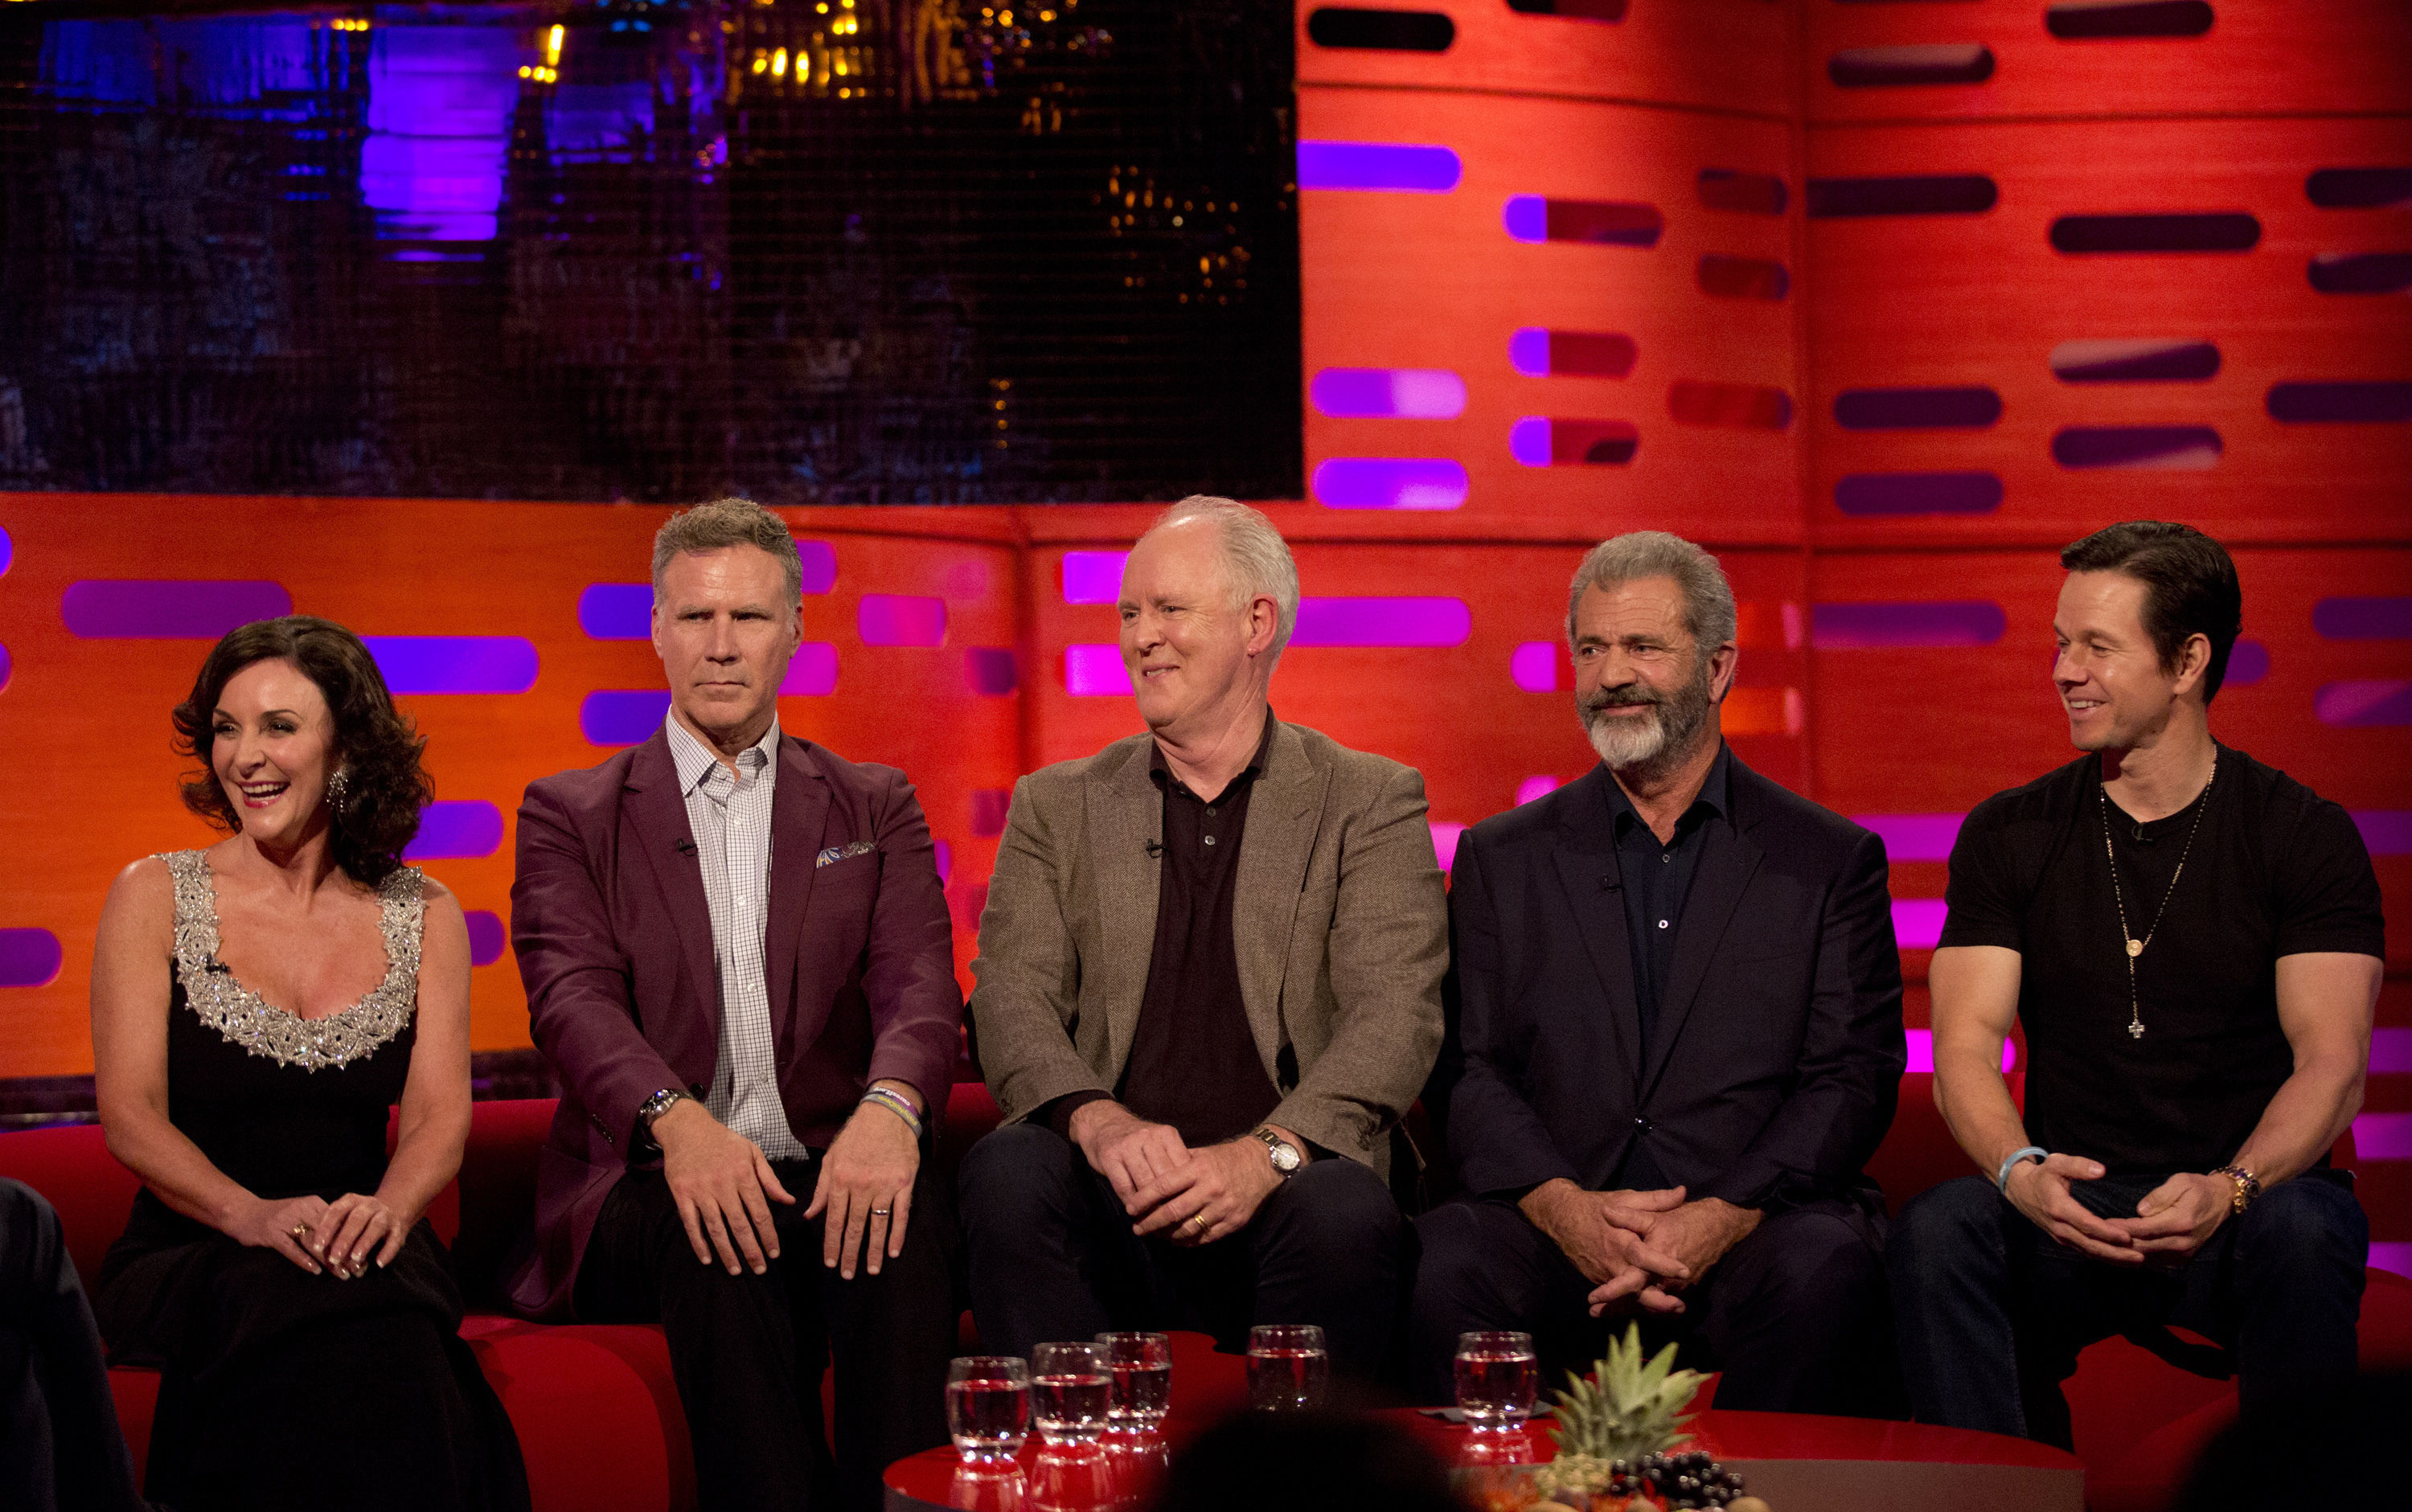 Shirley Ballas, Will Ferrell, John Lithgow, Mel Gibson, and Mark Wahlberg while filming The Graham Norton Show (Isabel Infantes/PA)